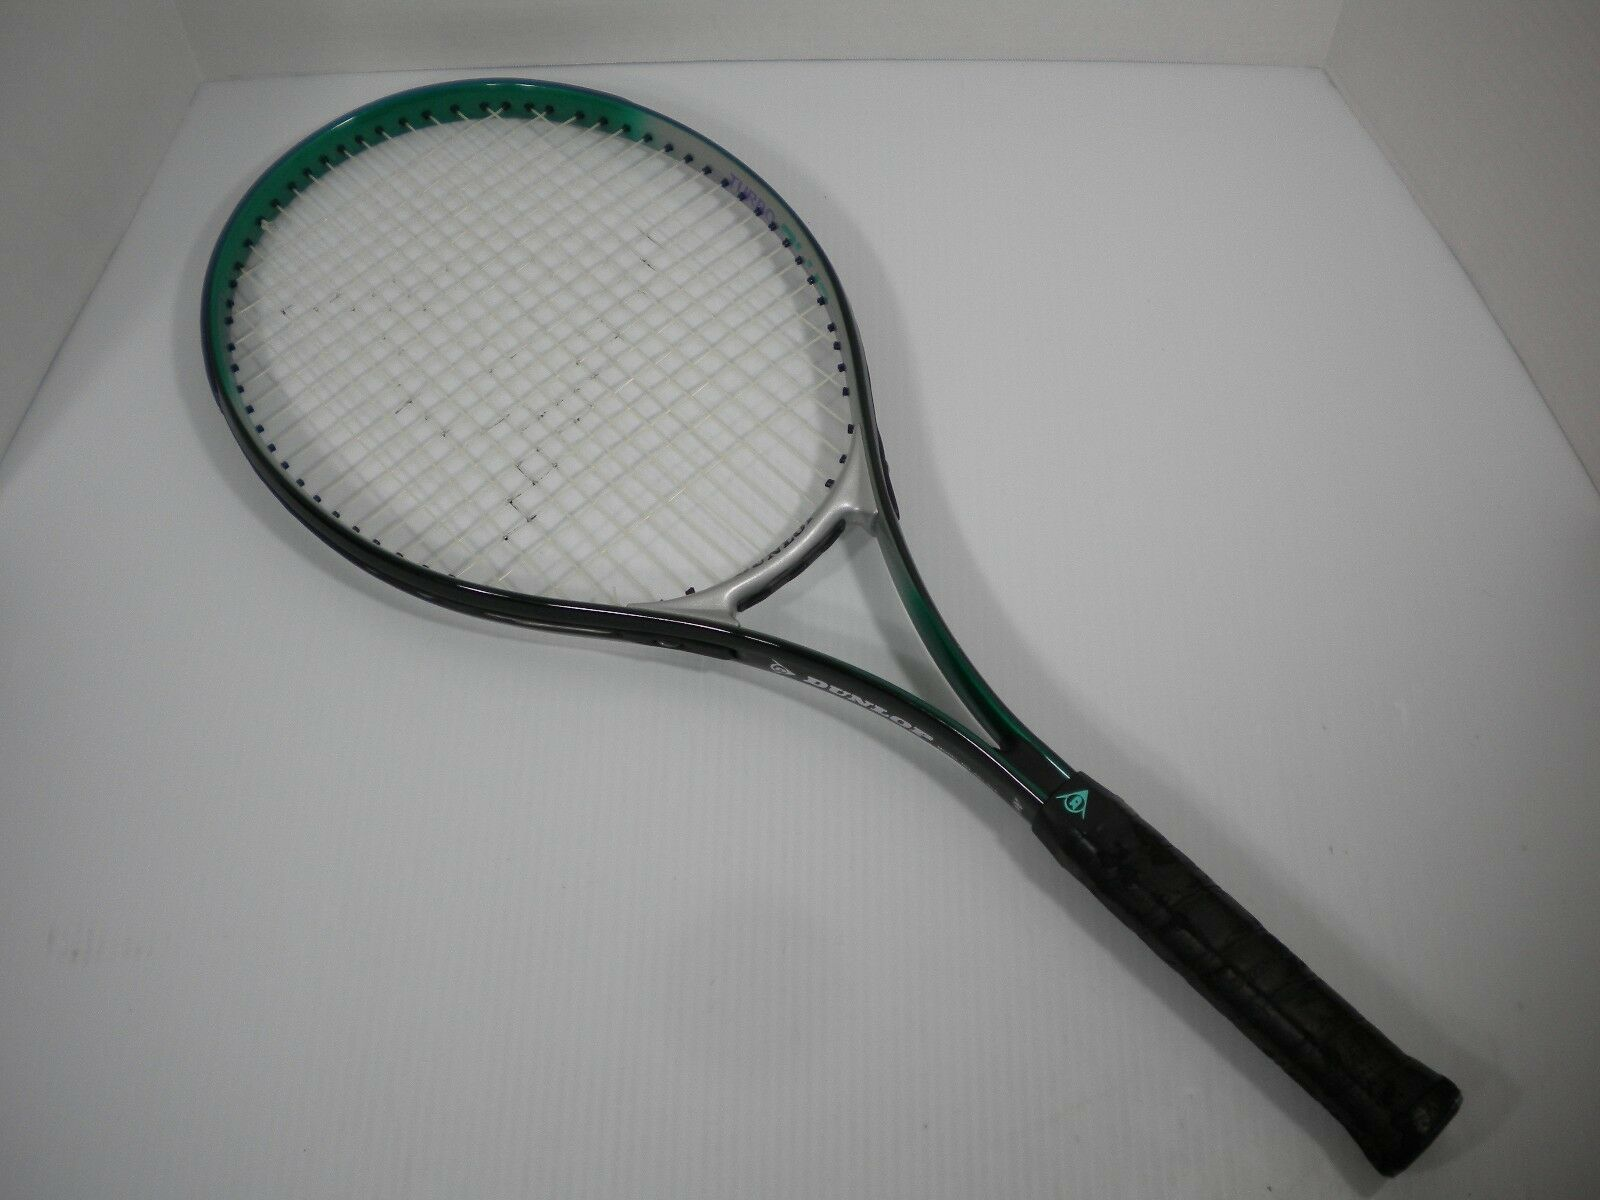 Dunlop Turbo Plus Series Oversize Broad Beam Tennis Racquet 881-620 Grip 4 3 8